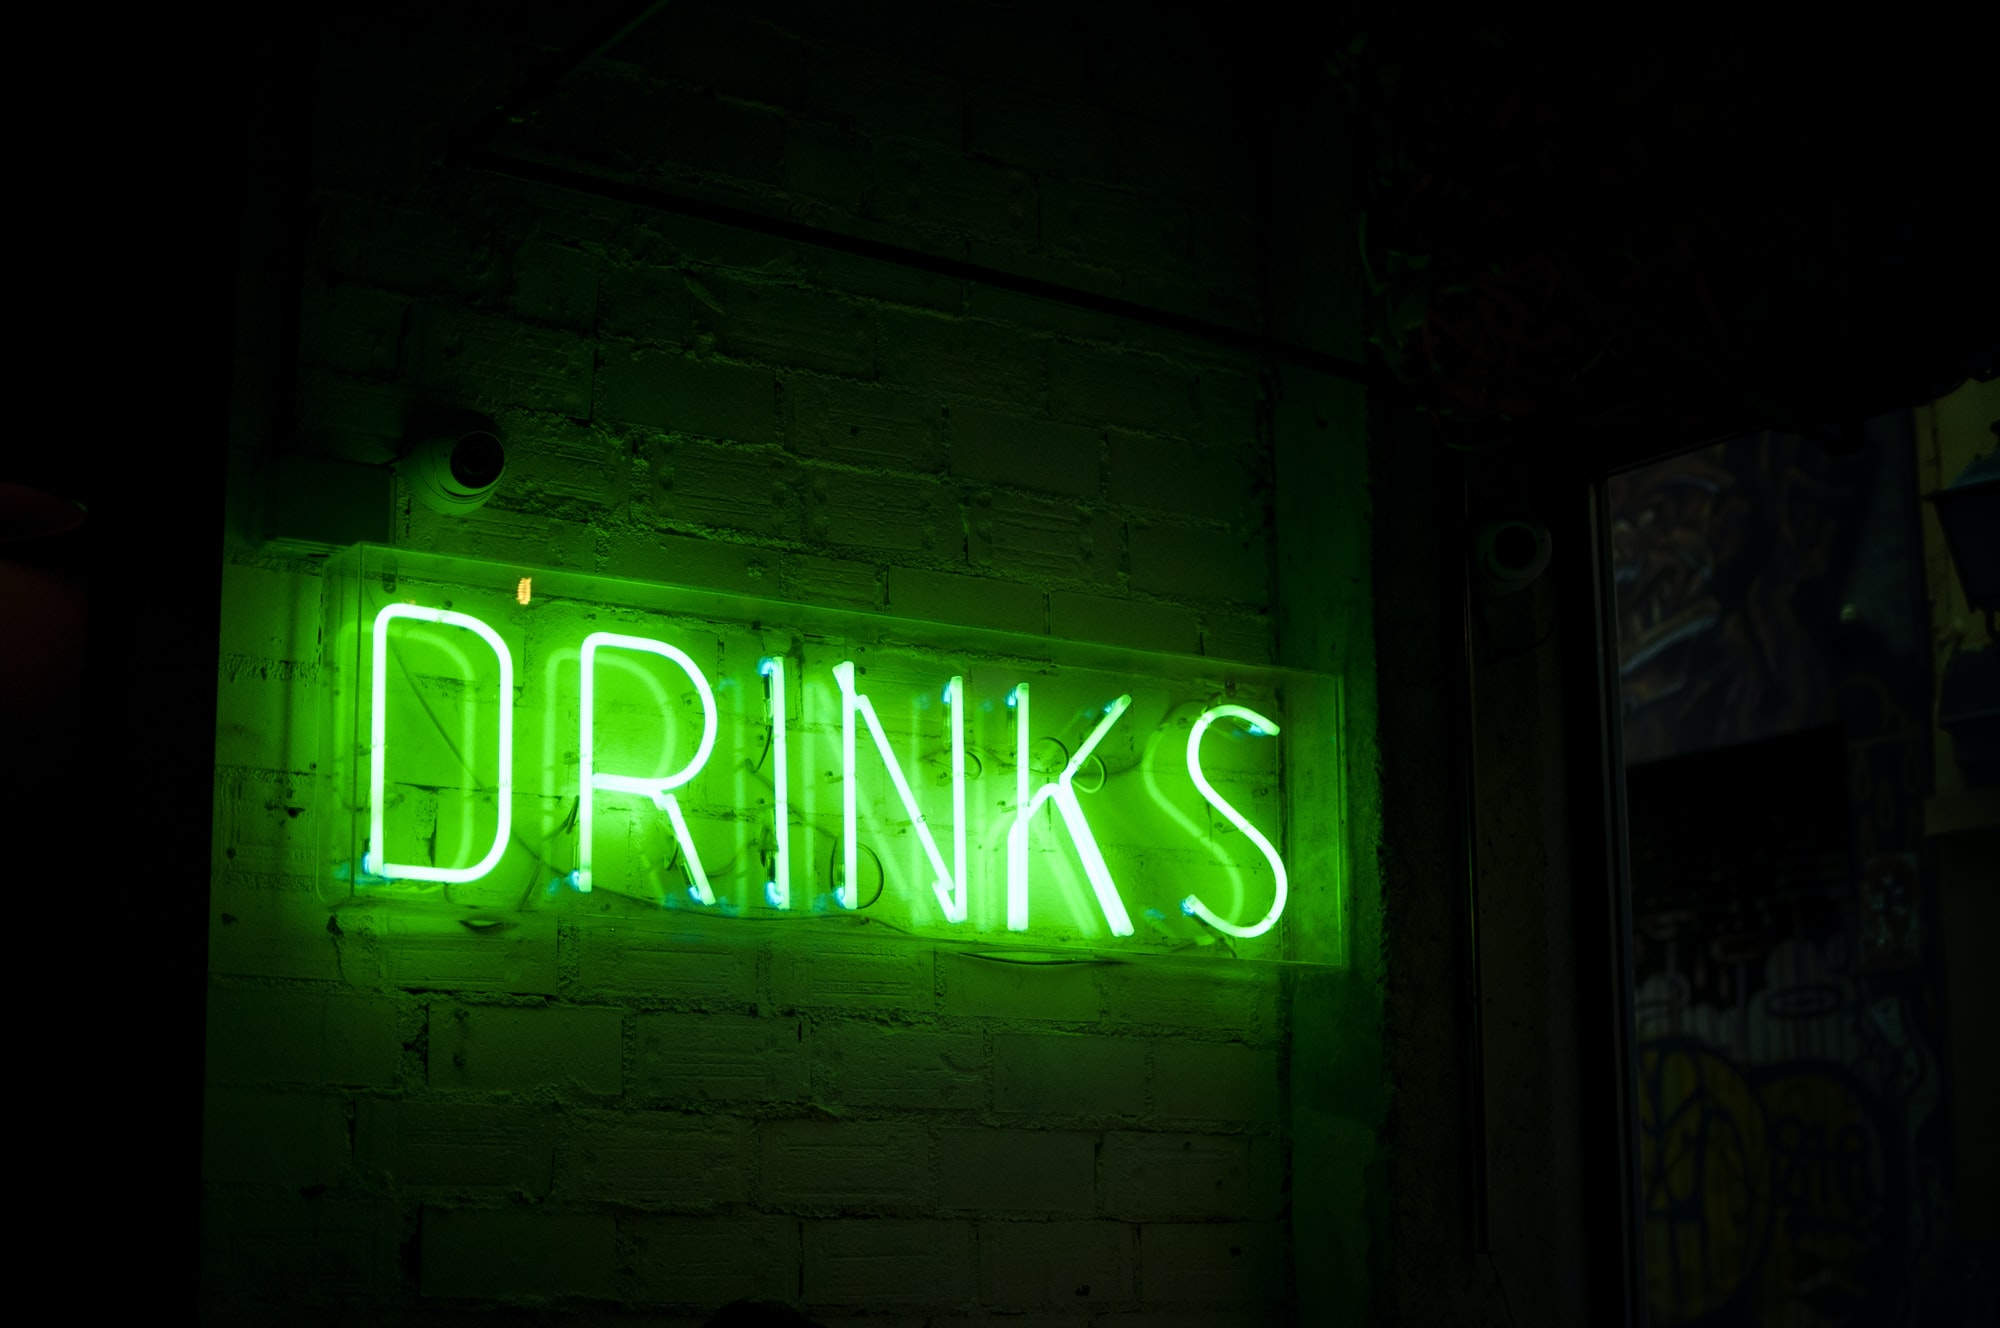 January 18 - Would a Drink Help?